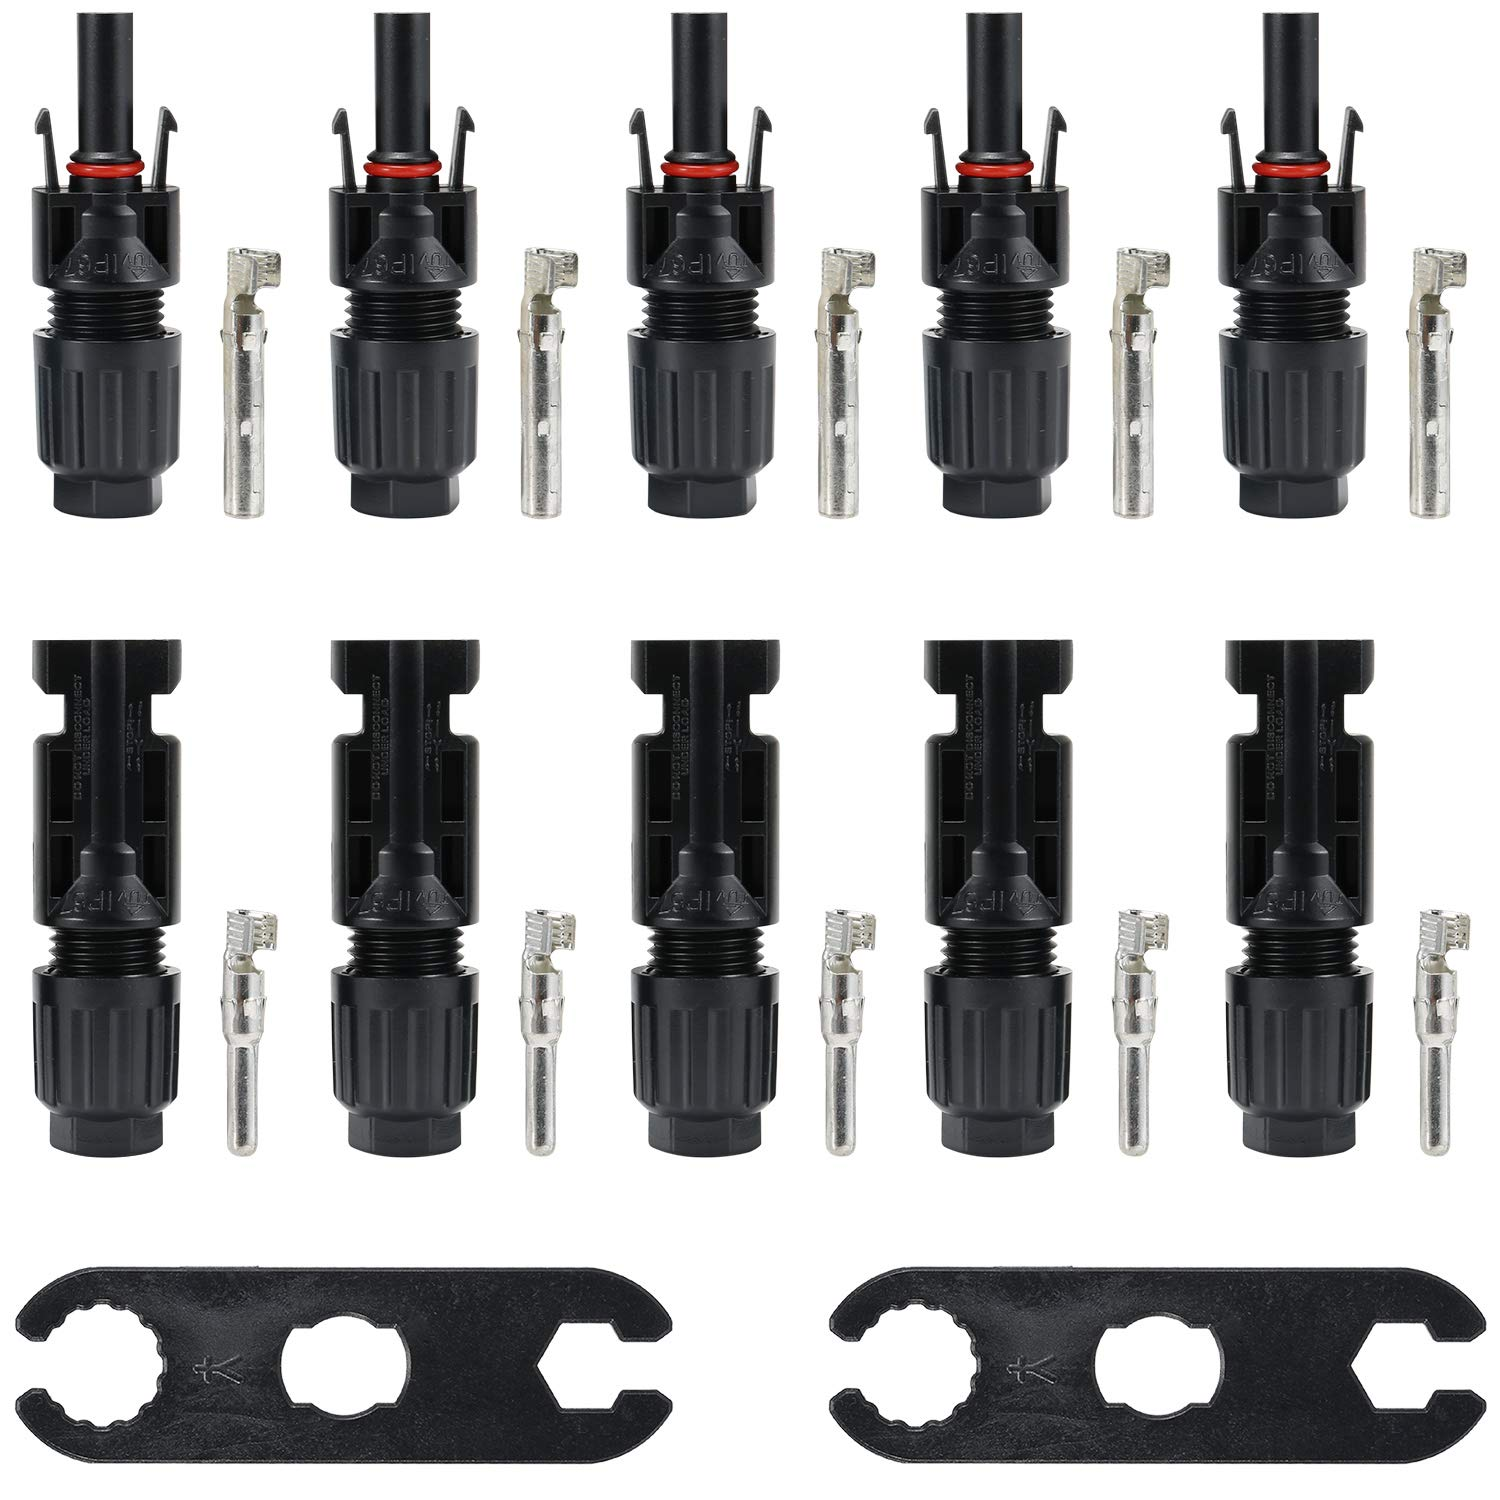 AOOHOOA MC4 Male//Female Solar Panel Cable Connectors Double Seal Rings for Better Waterproof Effect 5 Pair and 2 MC4 Tool. 5 MC4